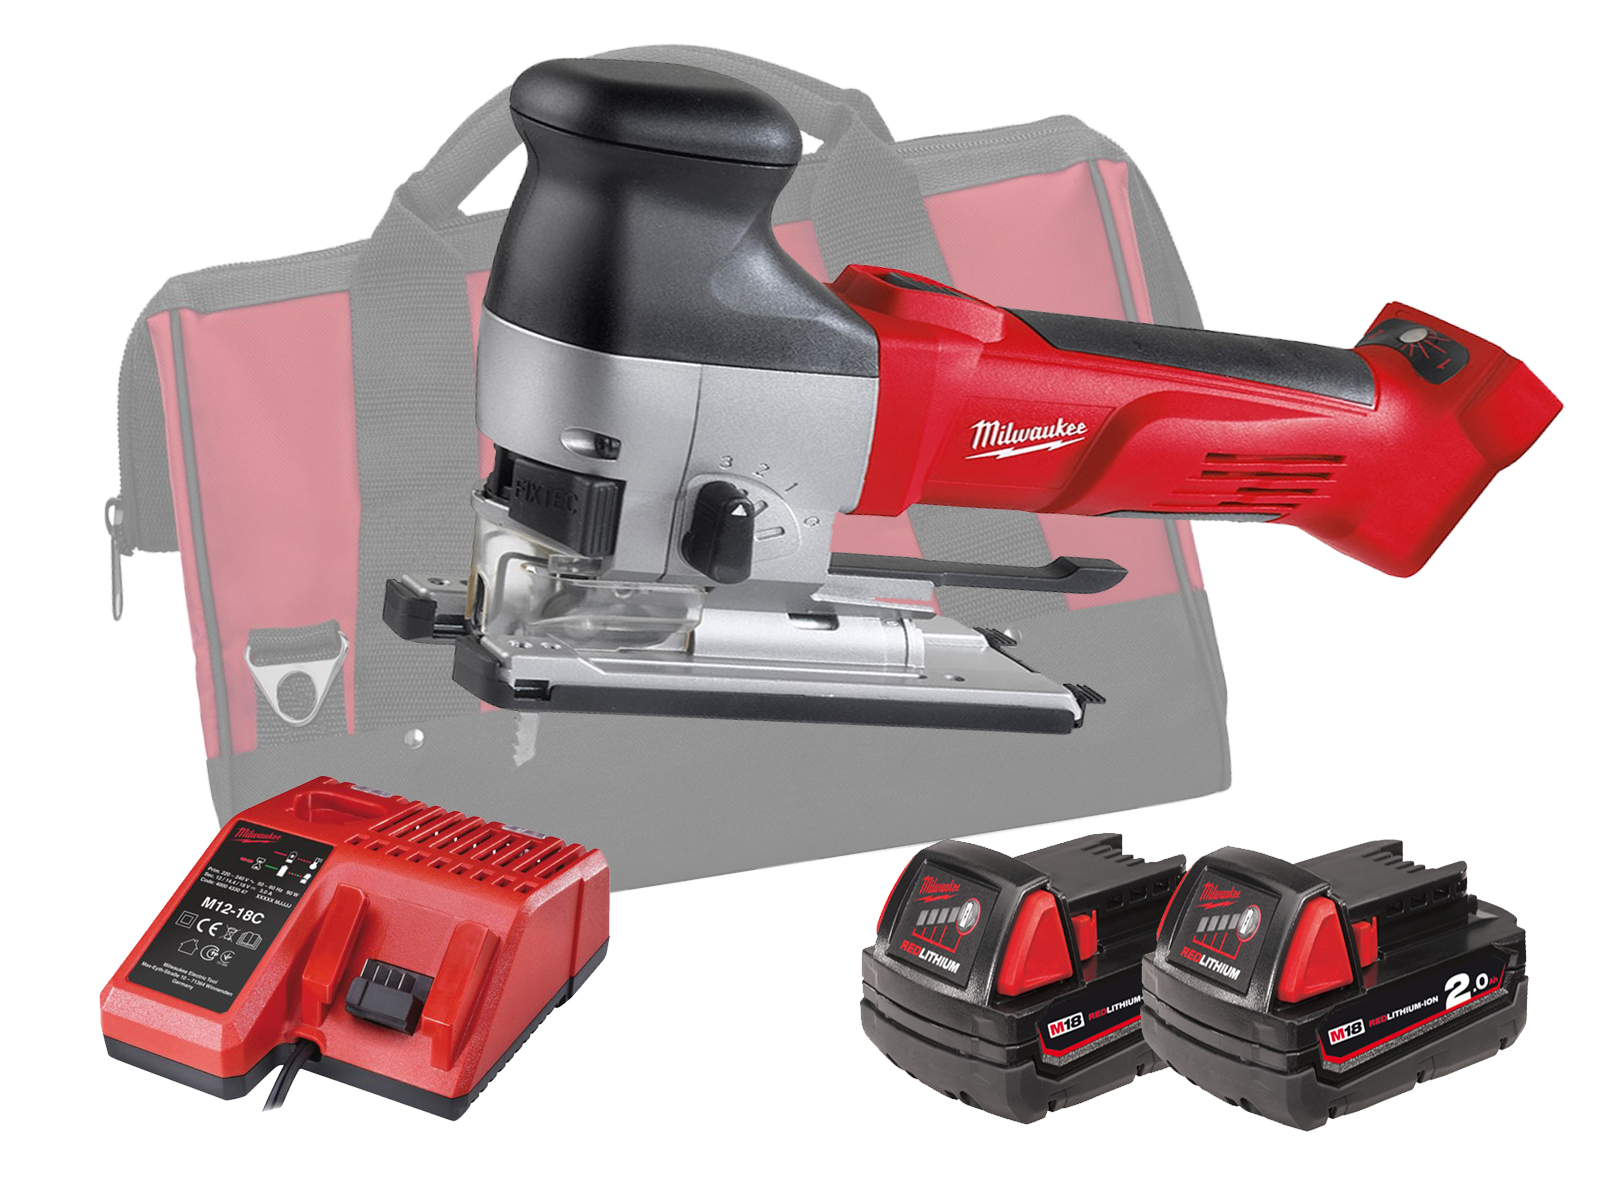 MILWAUKEE 18V HEAVY-DUTY BODY GRIP JIGSAW - HD18JSB - 2.0AH PACK